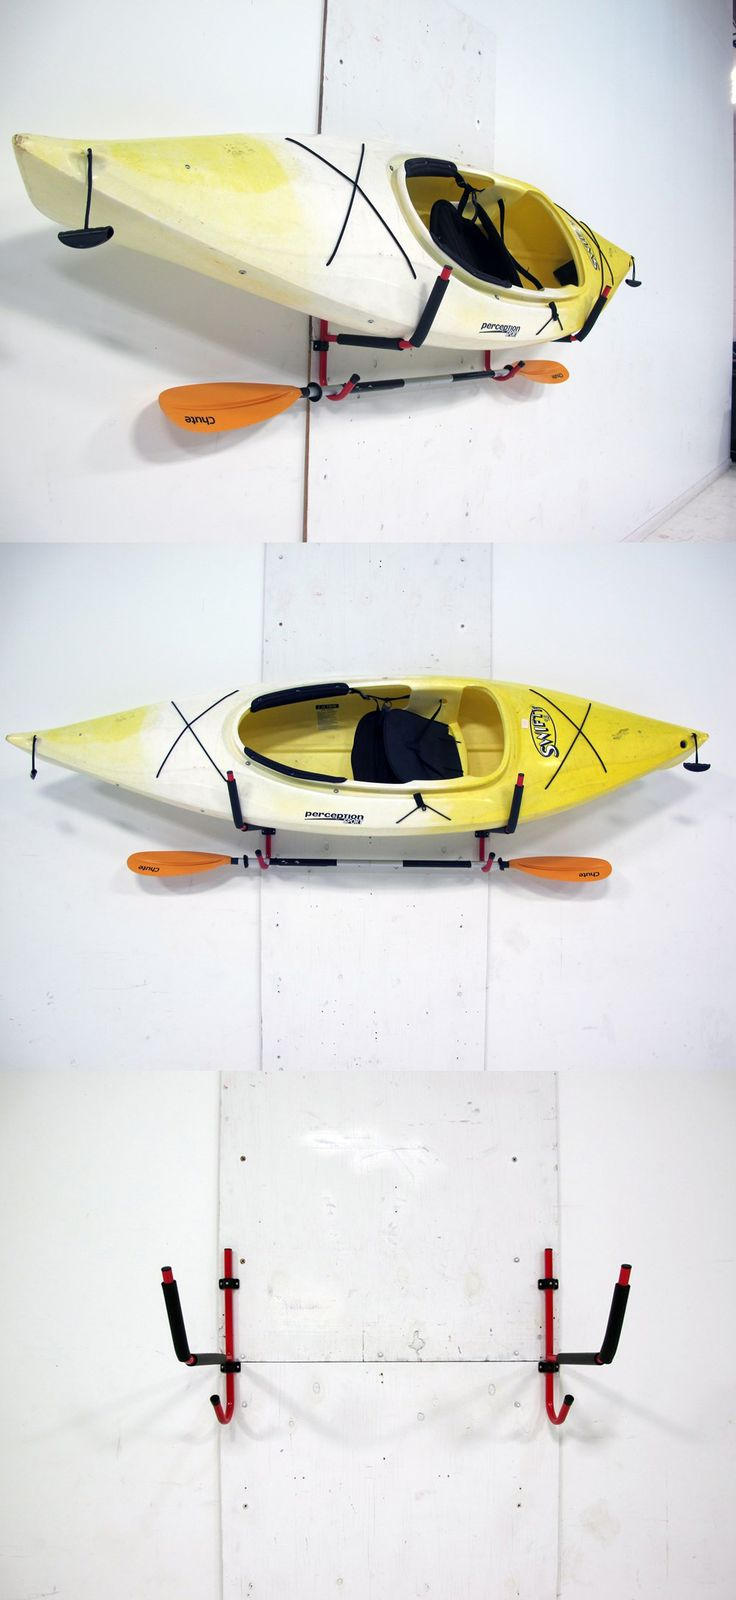 Folding kayak storage wall hooks that keep your kayaks secure when you're not on the water! Store them away in the garage, basement or any wall for that matter.